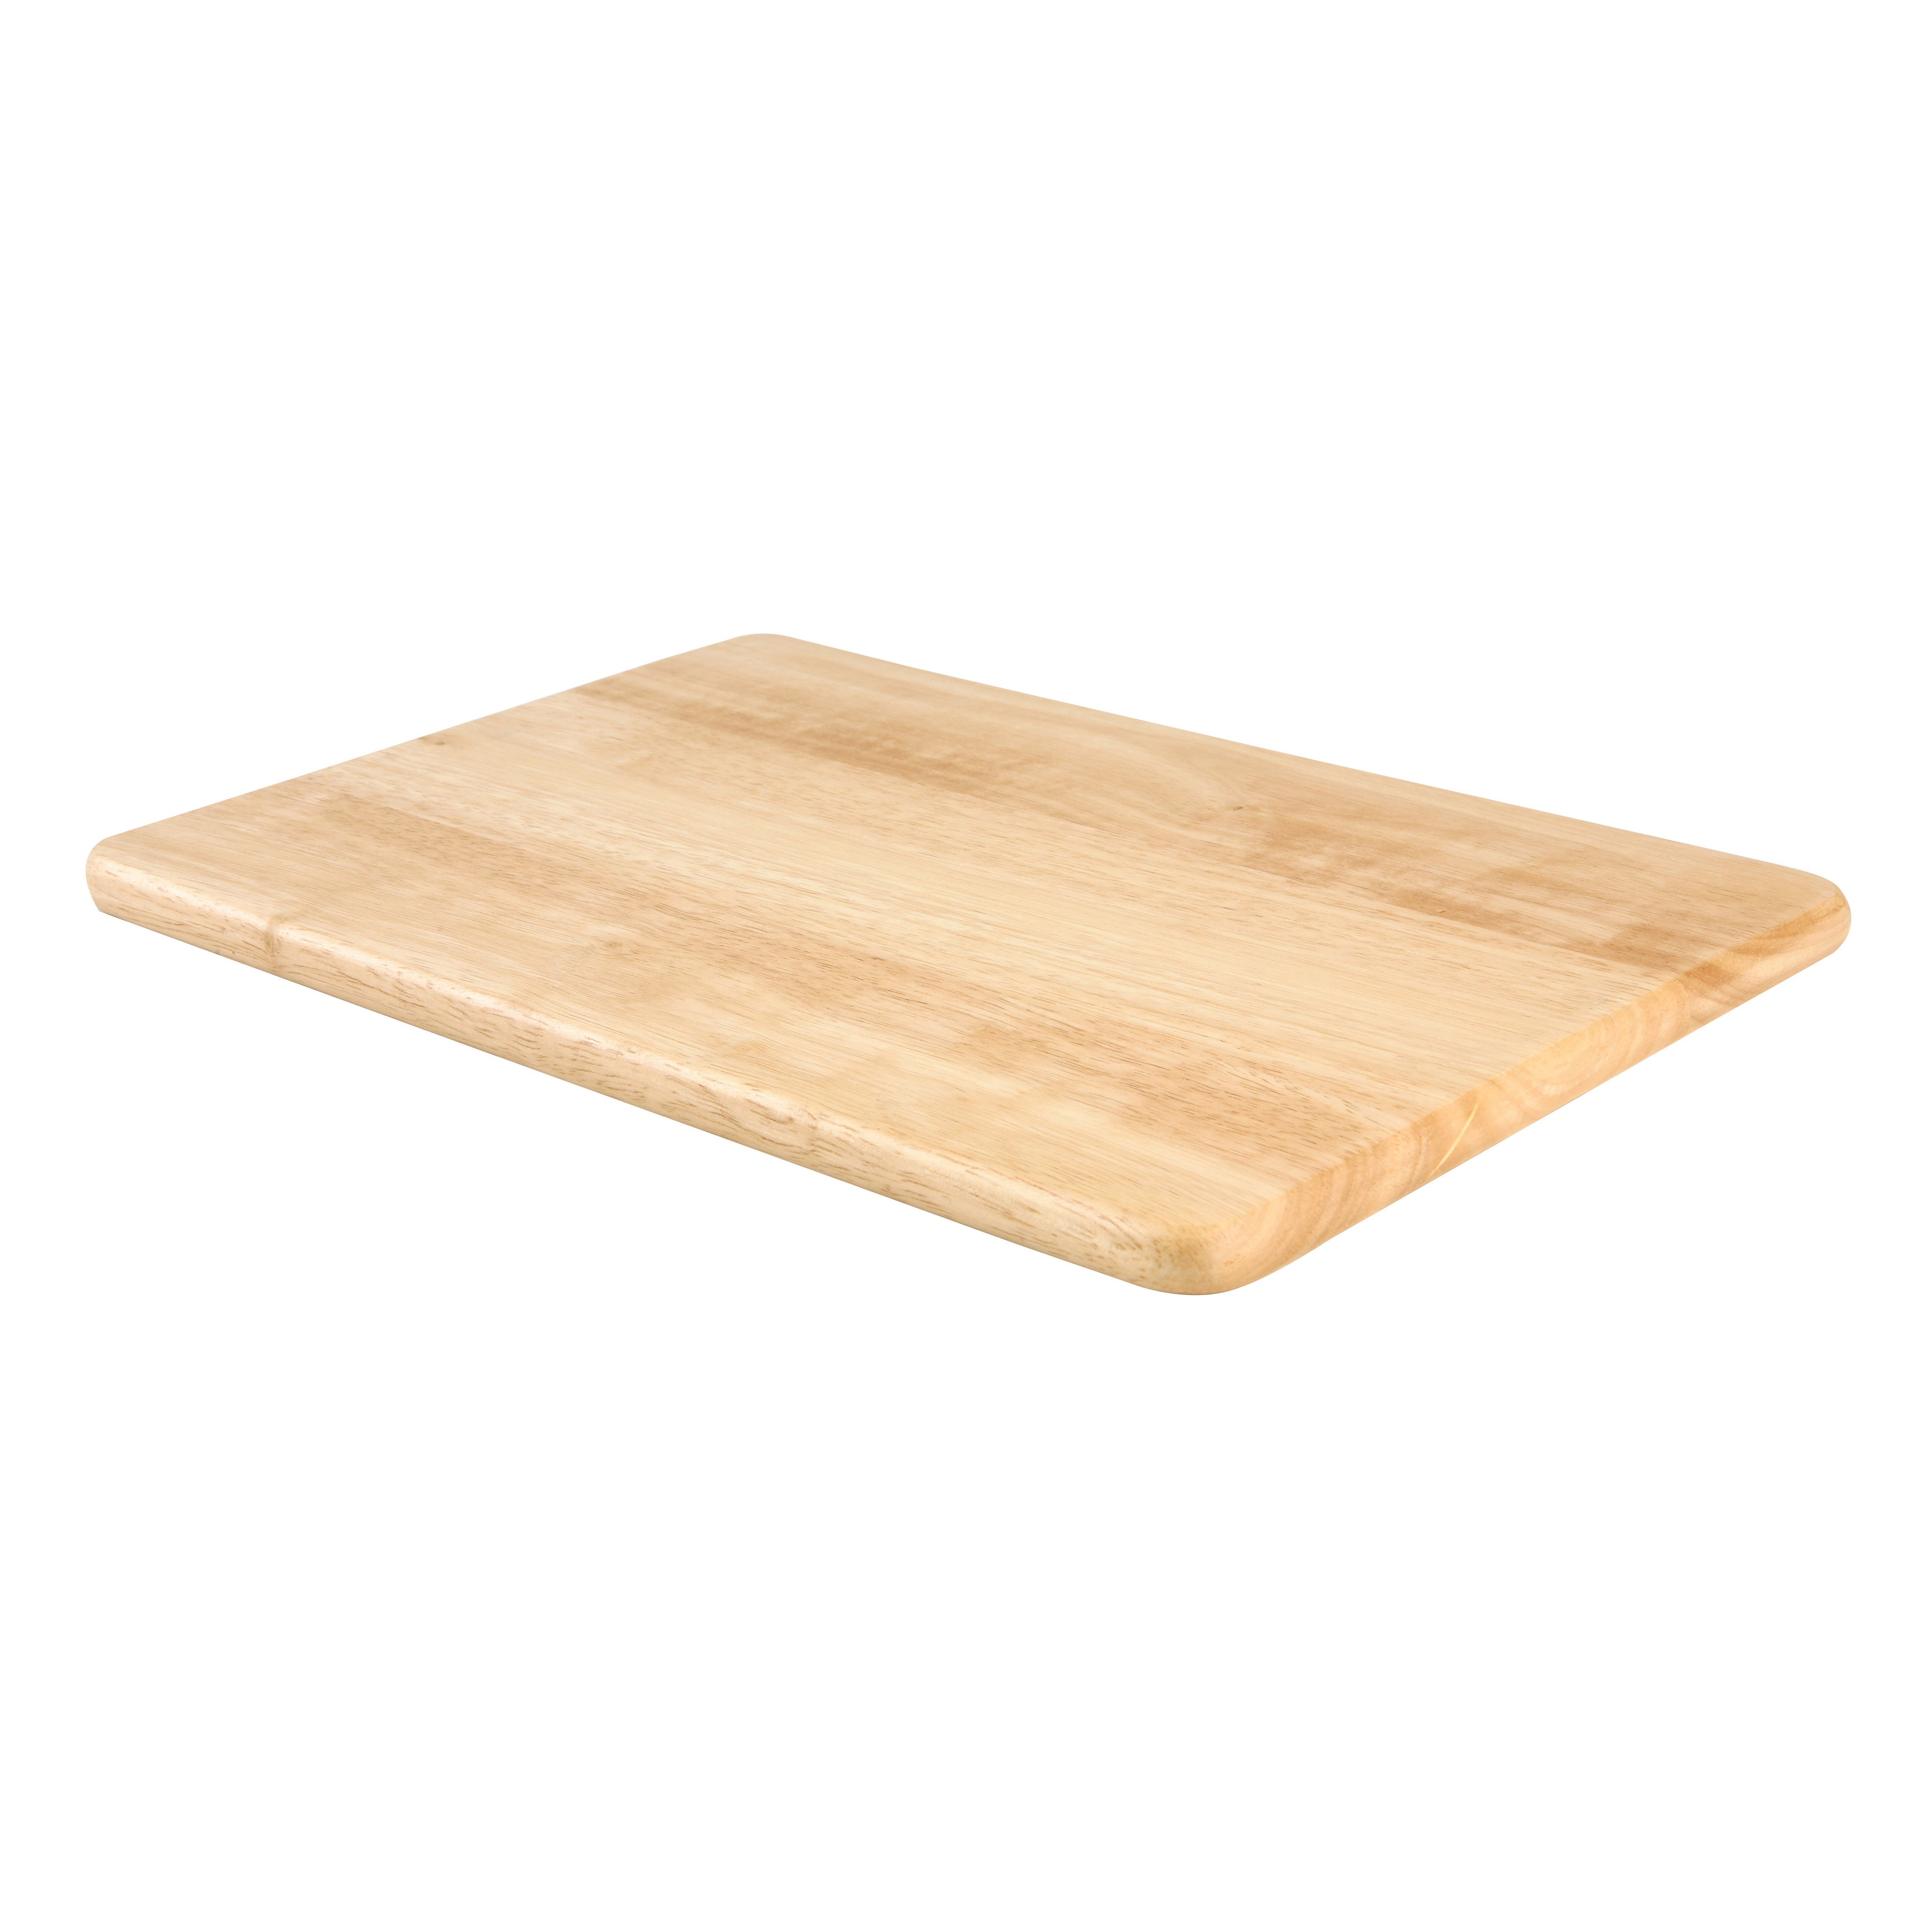 T & G Hevea Basic Chopping Board